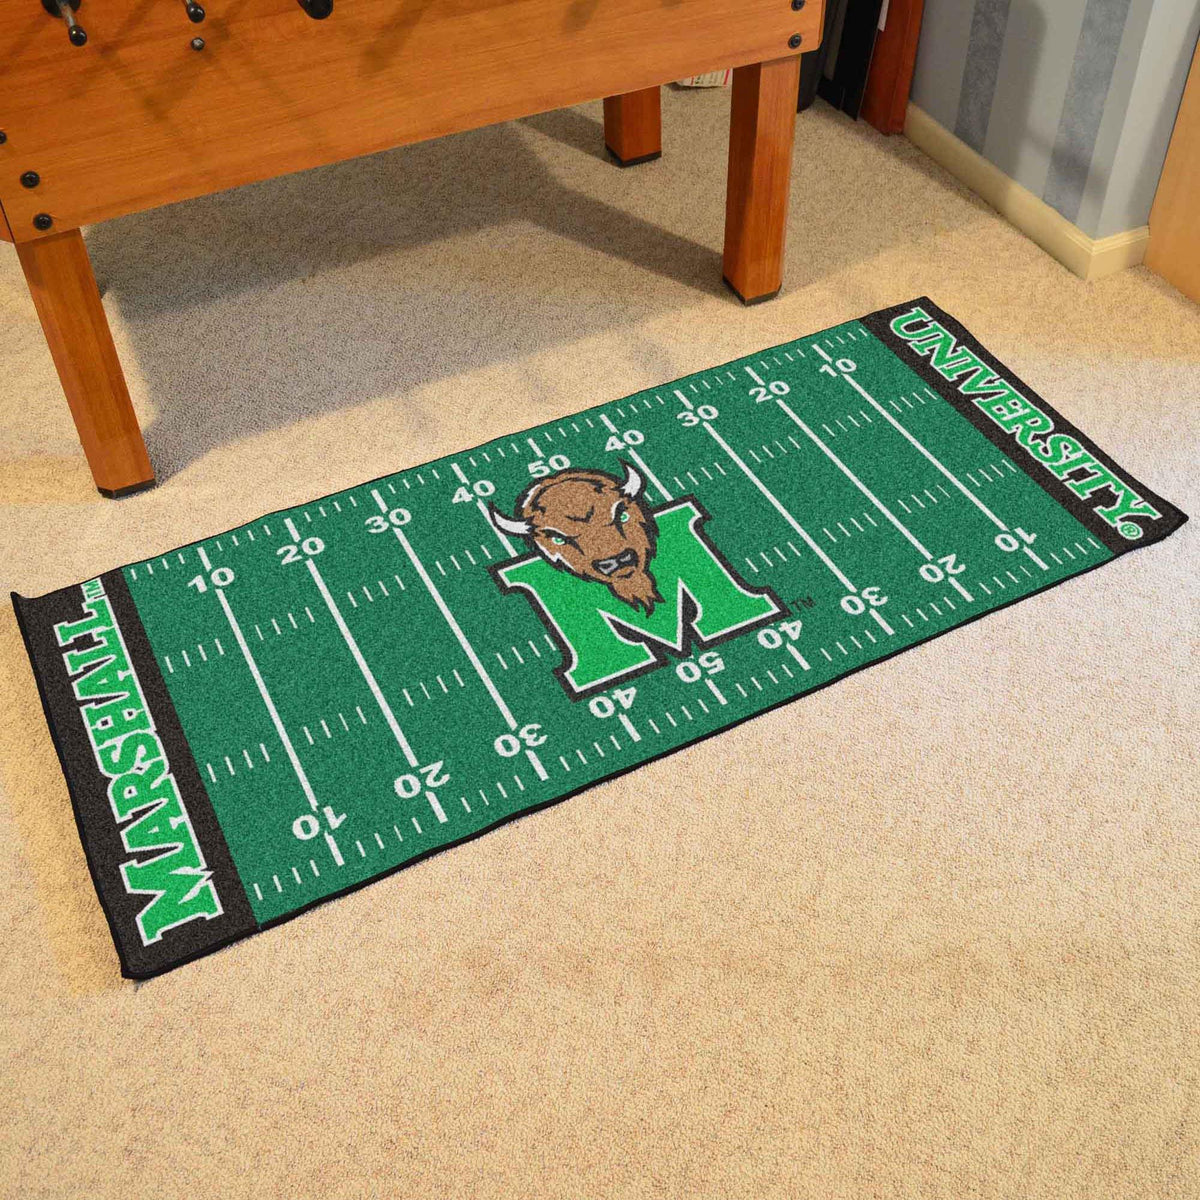 Collegiate - Football Field Runner Collegiate Mats, Rectangular Mats, Football Field Runner, Collegiate, Home Fan Mats Marshall